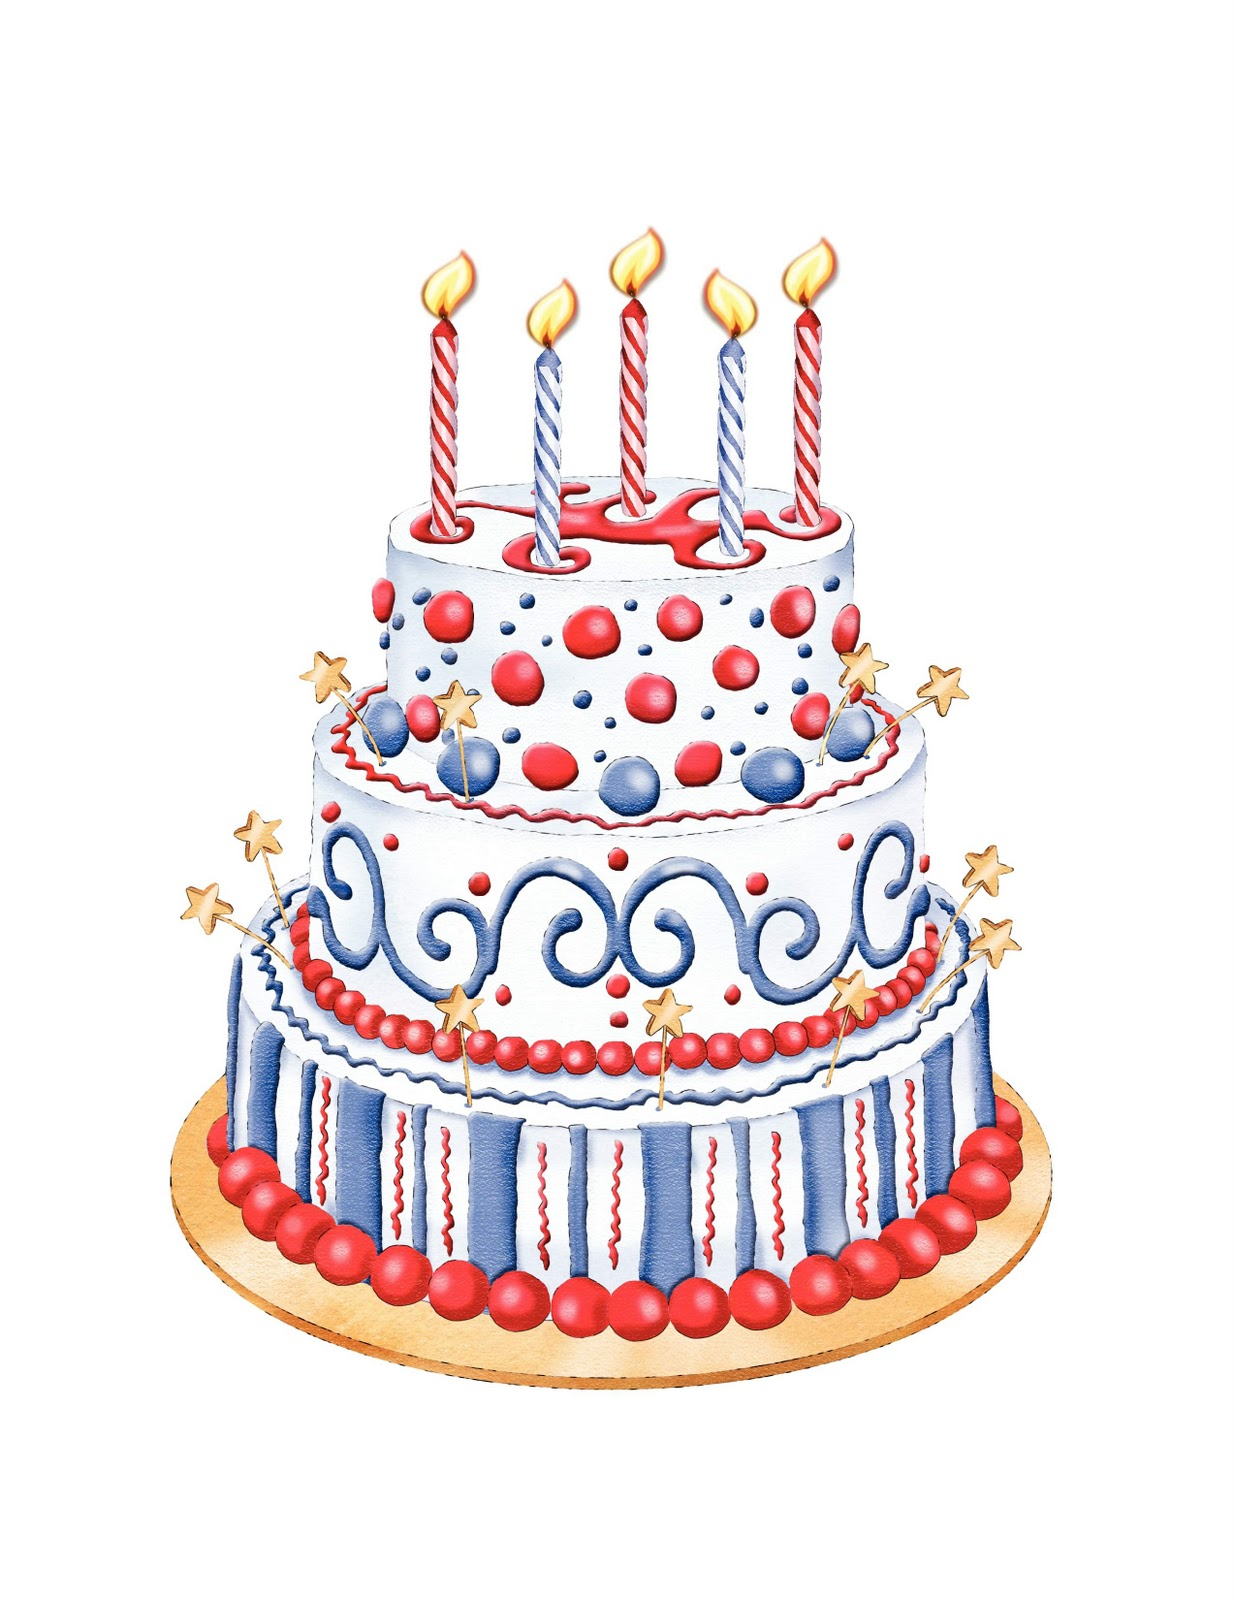 Free Cake Decorating Cliparts, Download Free Clip Art, Free.